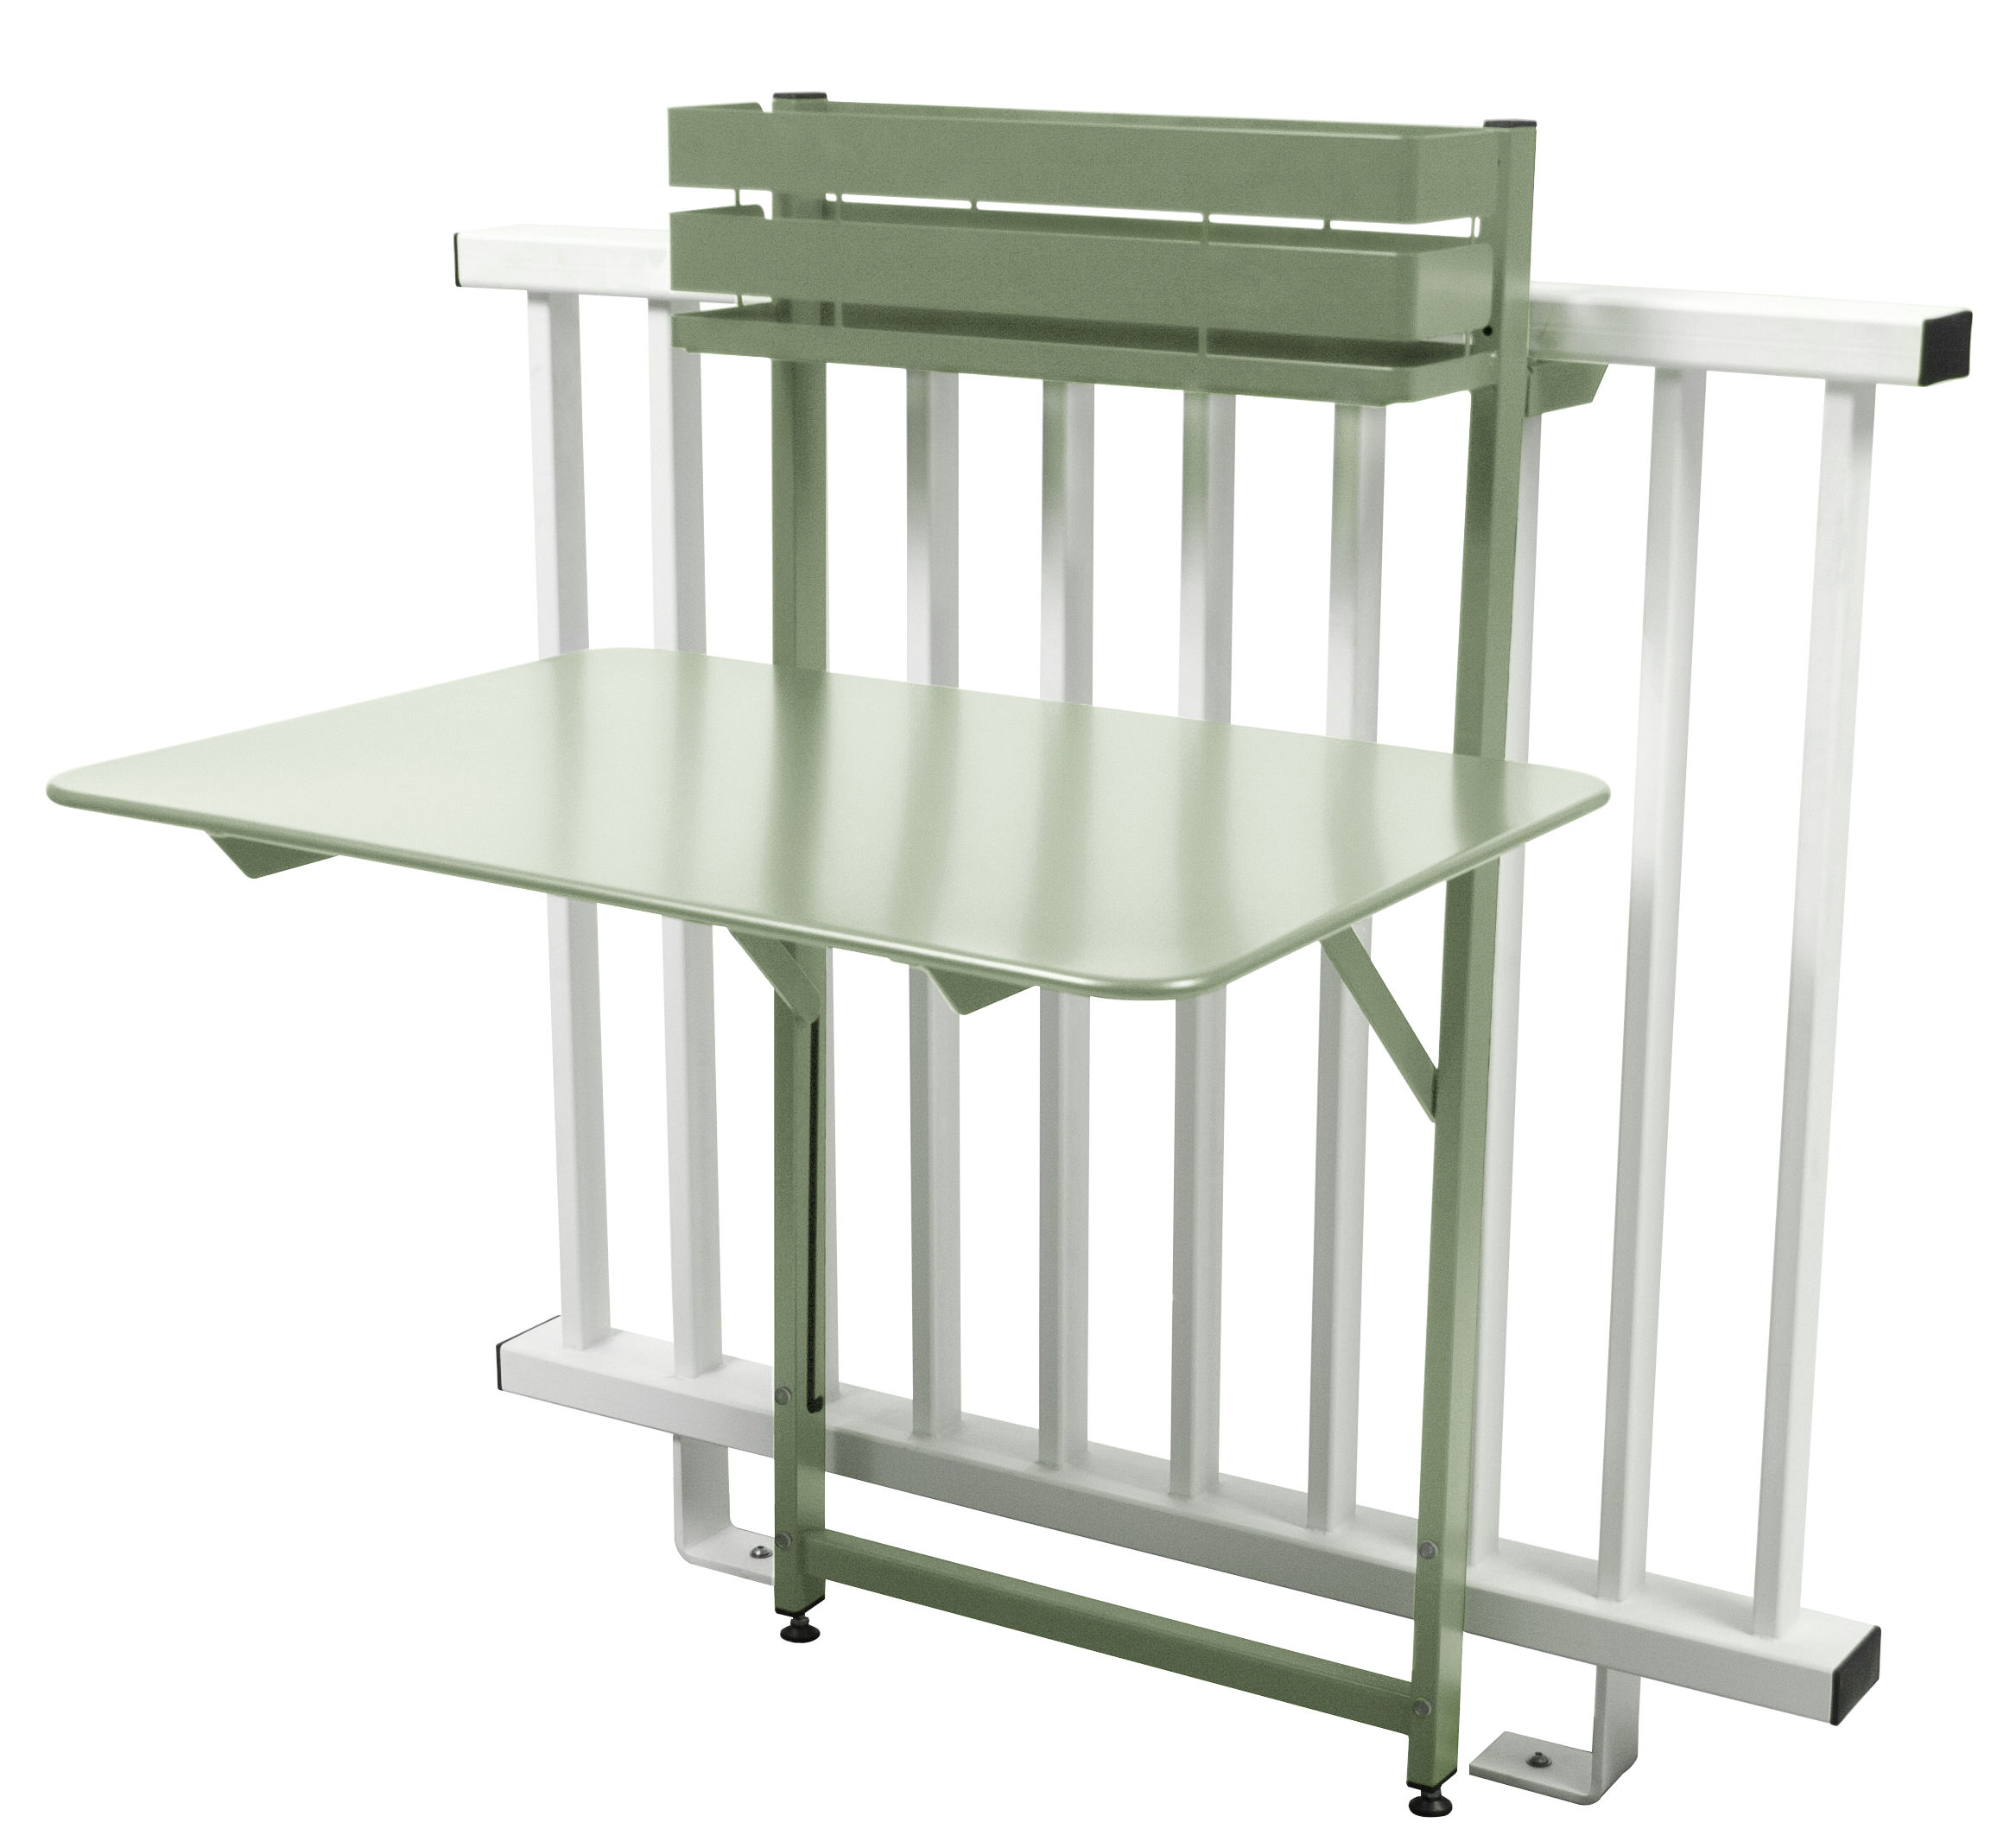 Table balcon pliante rabattable 100 table pliante balcon - Table rabattable balcon ...